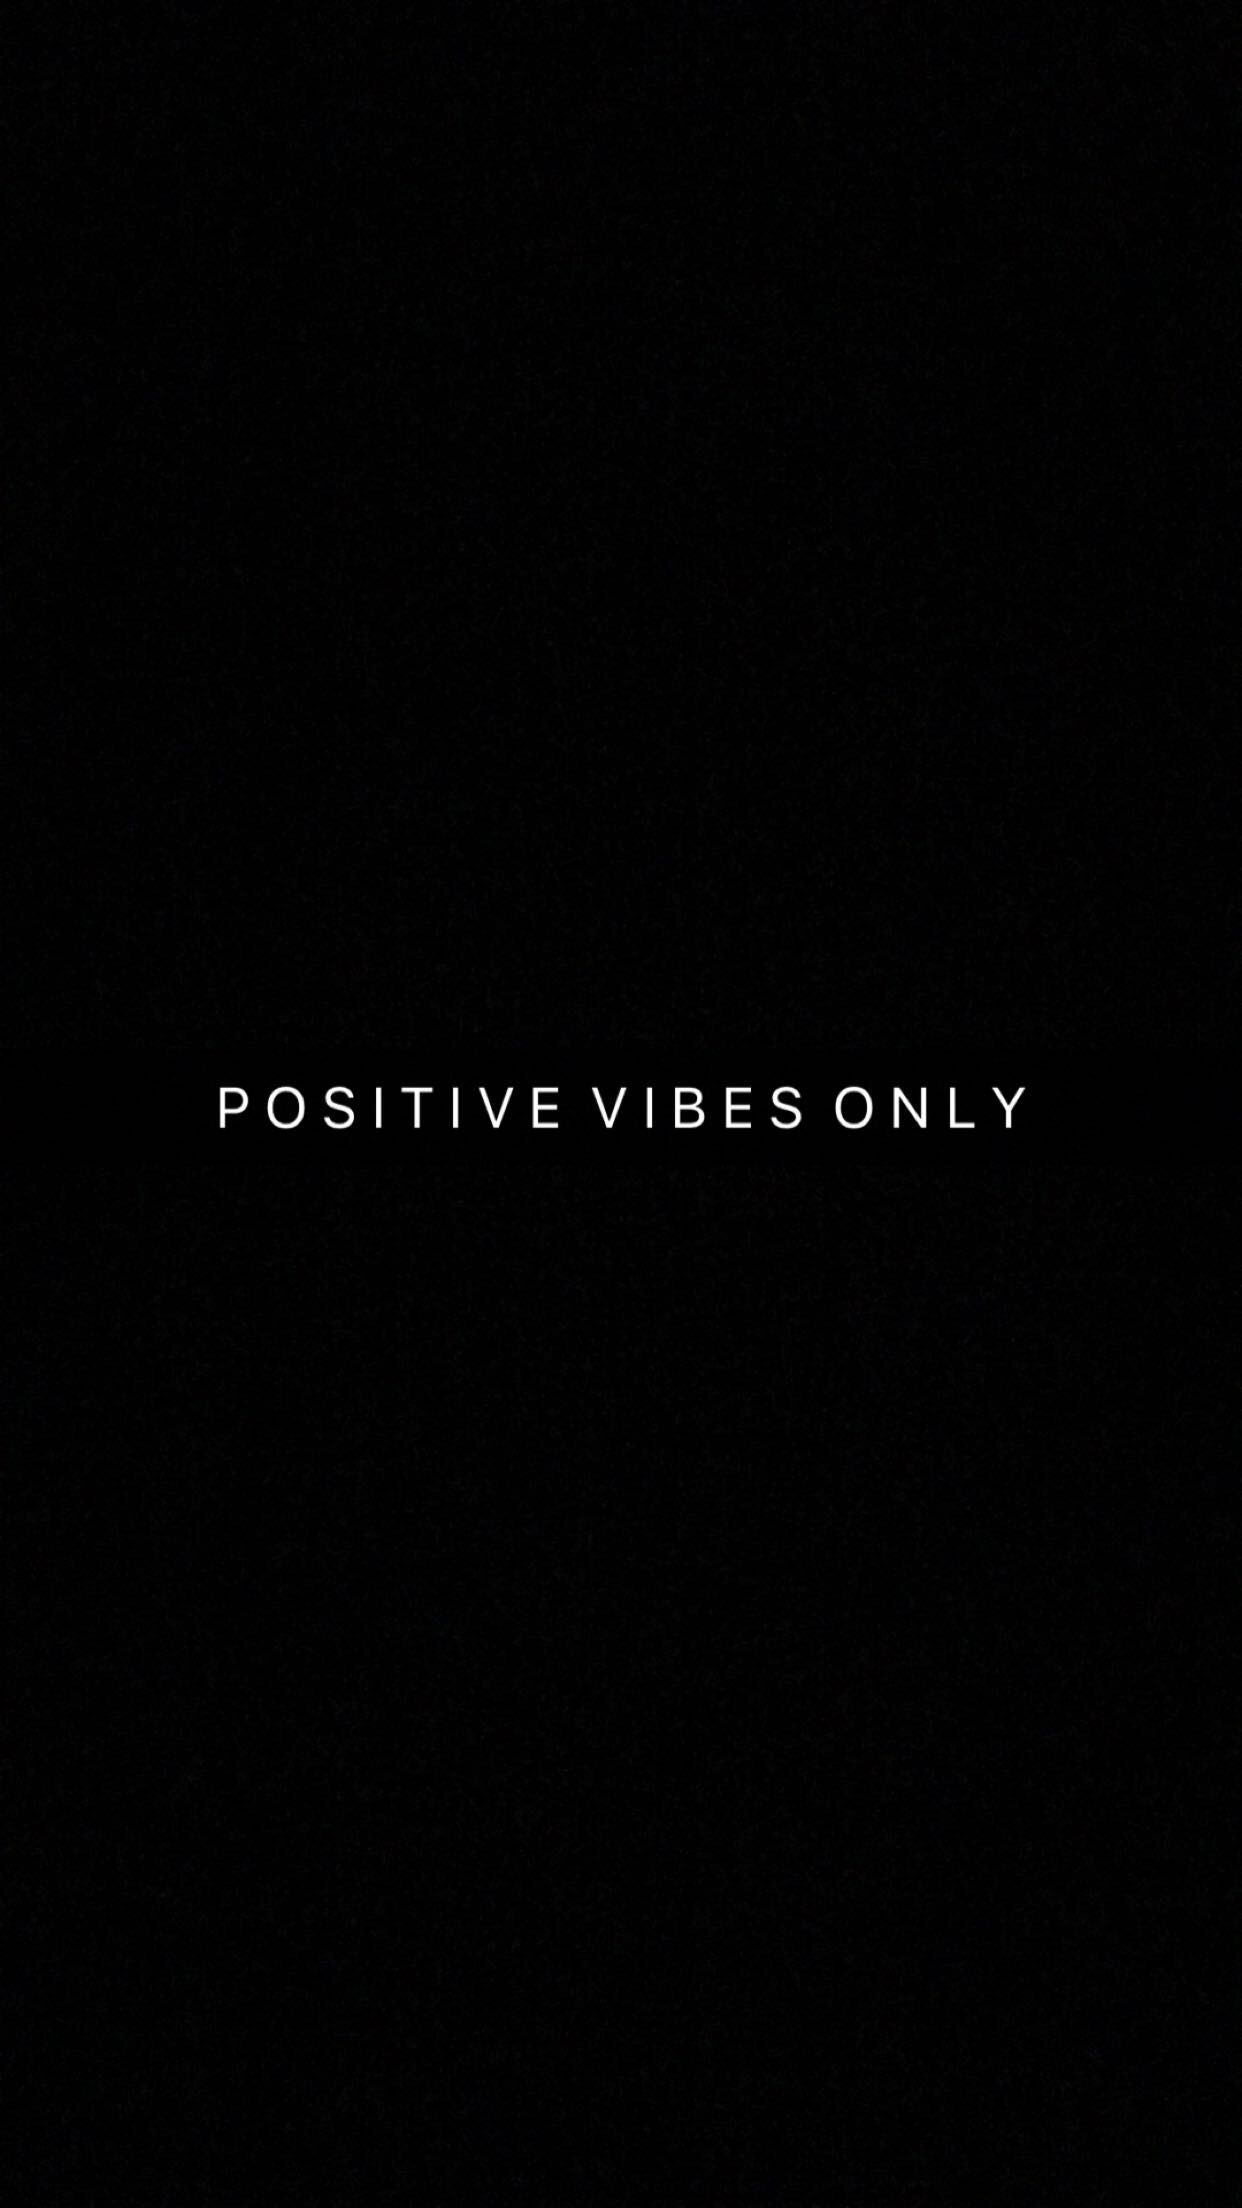 Free Positive Vibes Only Wallpaper By Itsyaboykp Positive Vibes Only Positive Vibes Positivity